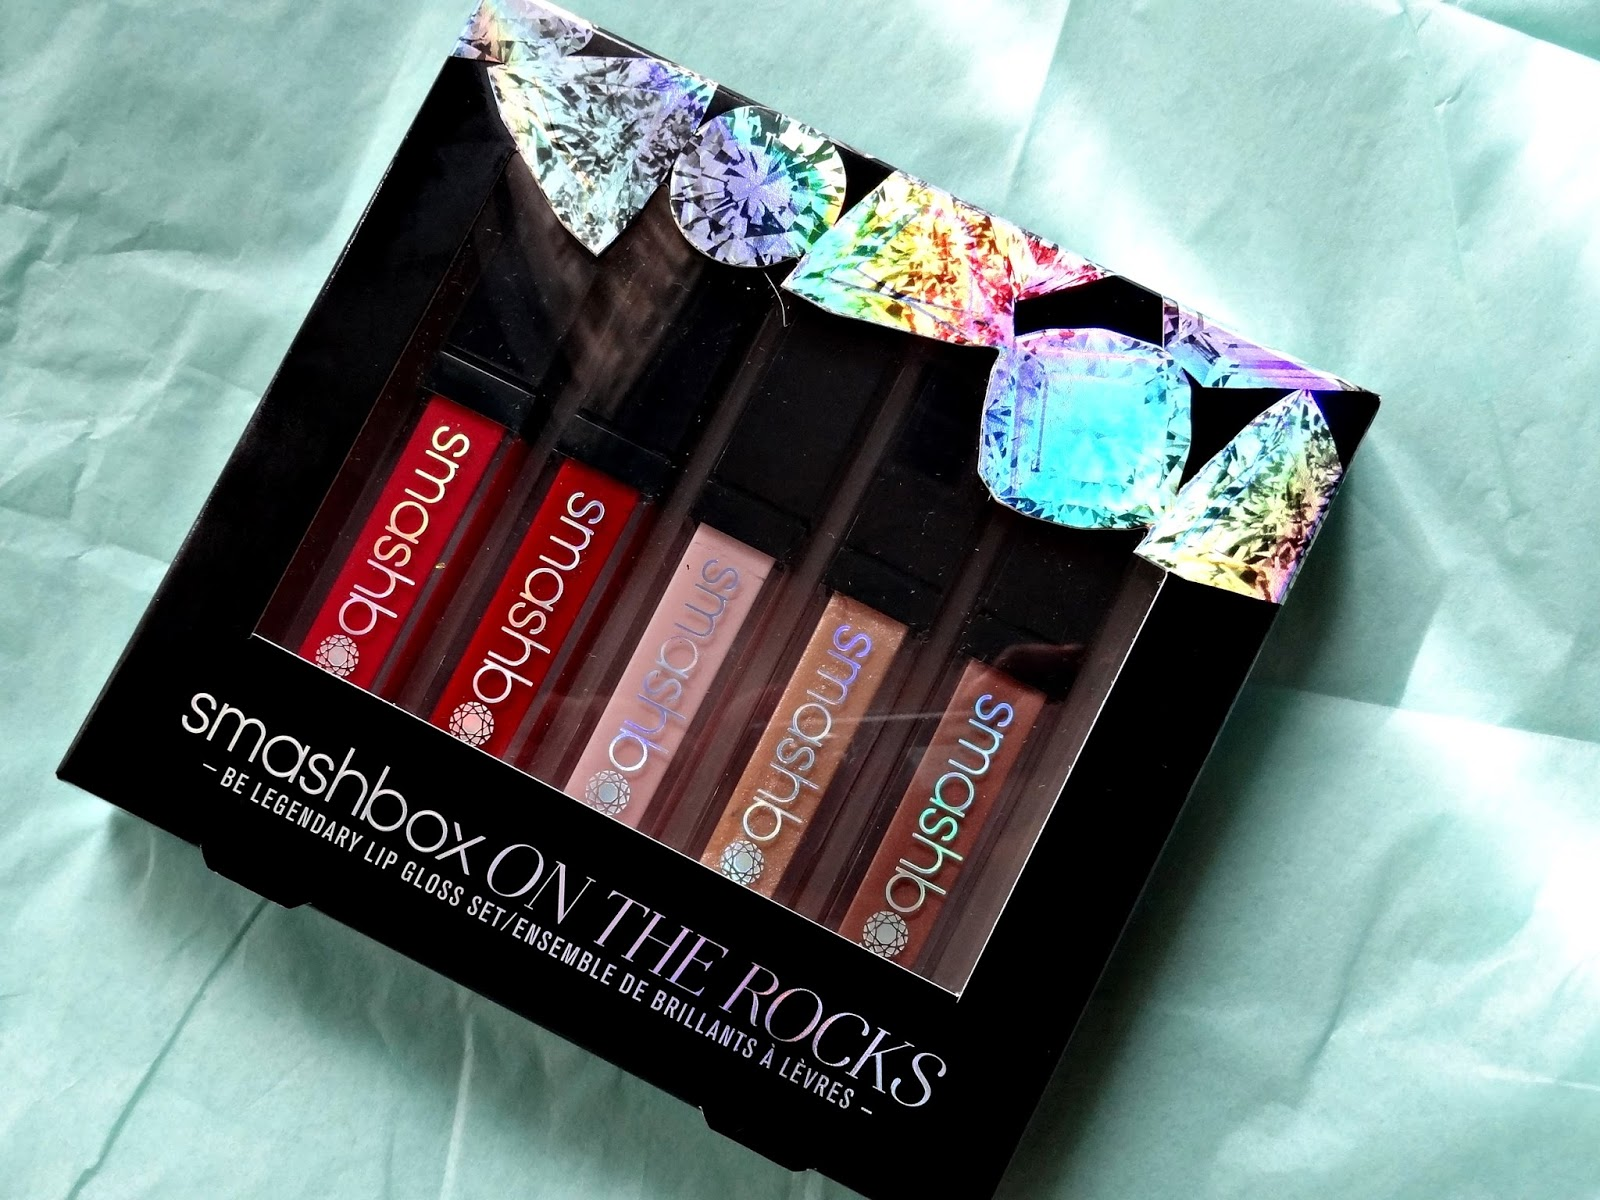 Smashbox On the Rocks Be legendary Lip gloss Set Smashbox Holiday 2014 Limited Edition Review, Photos & Swatches